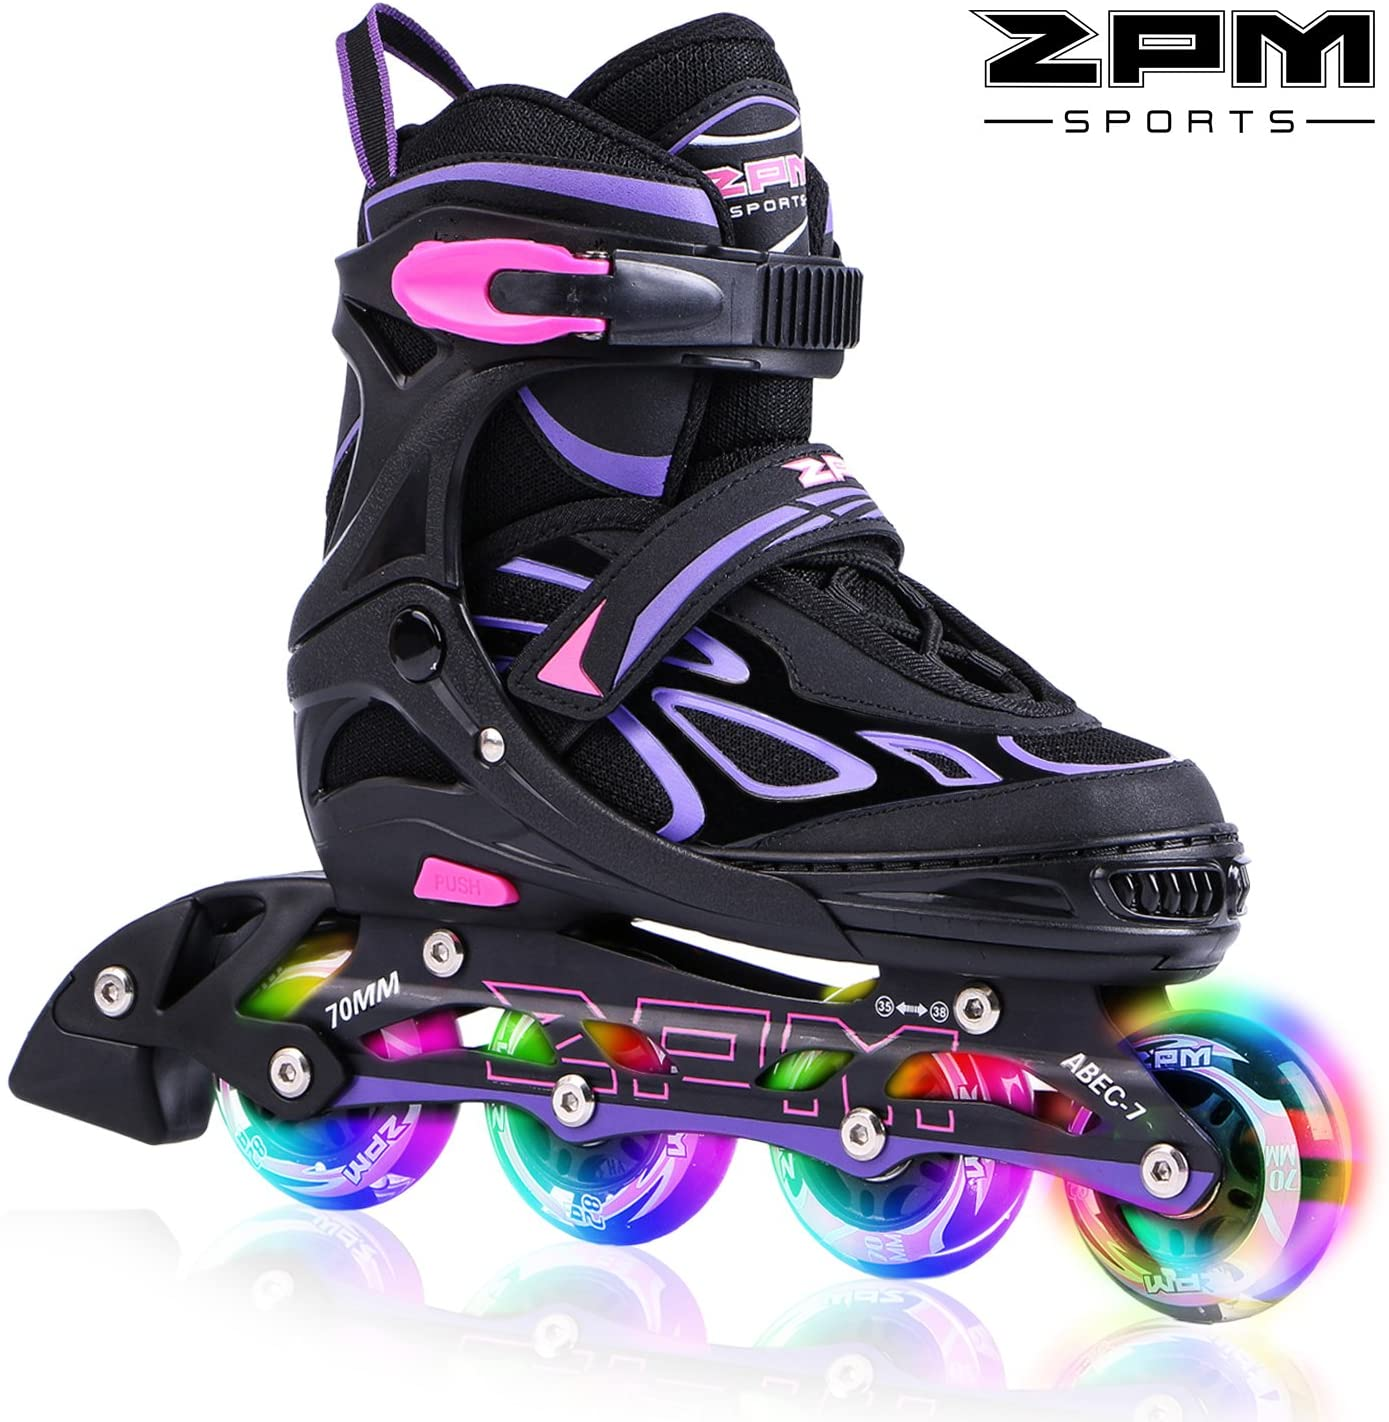 Patines con ruedas luminosas (2PM Sports)